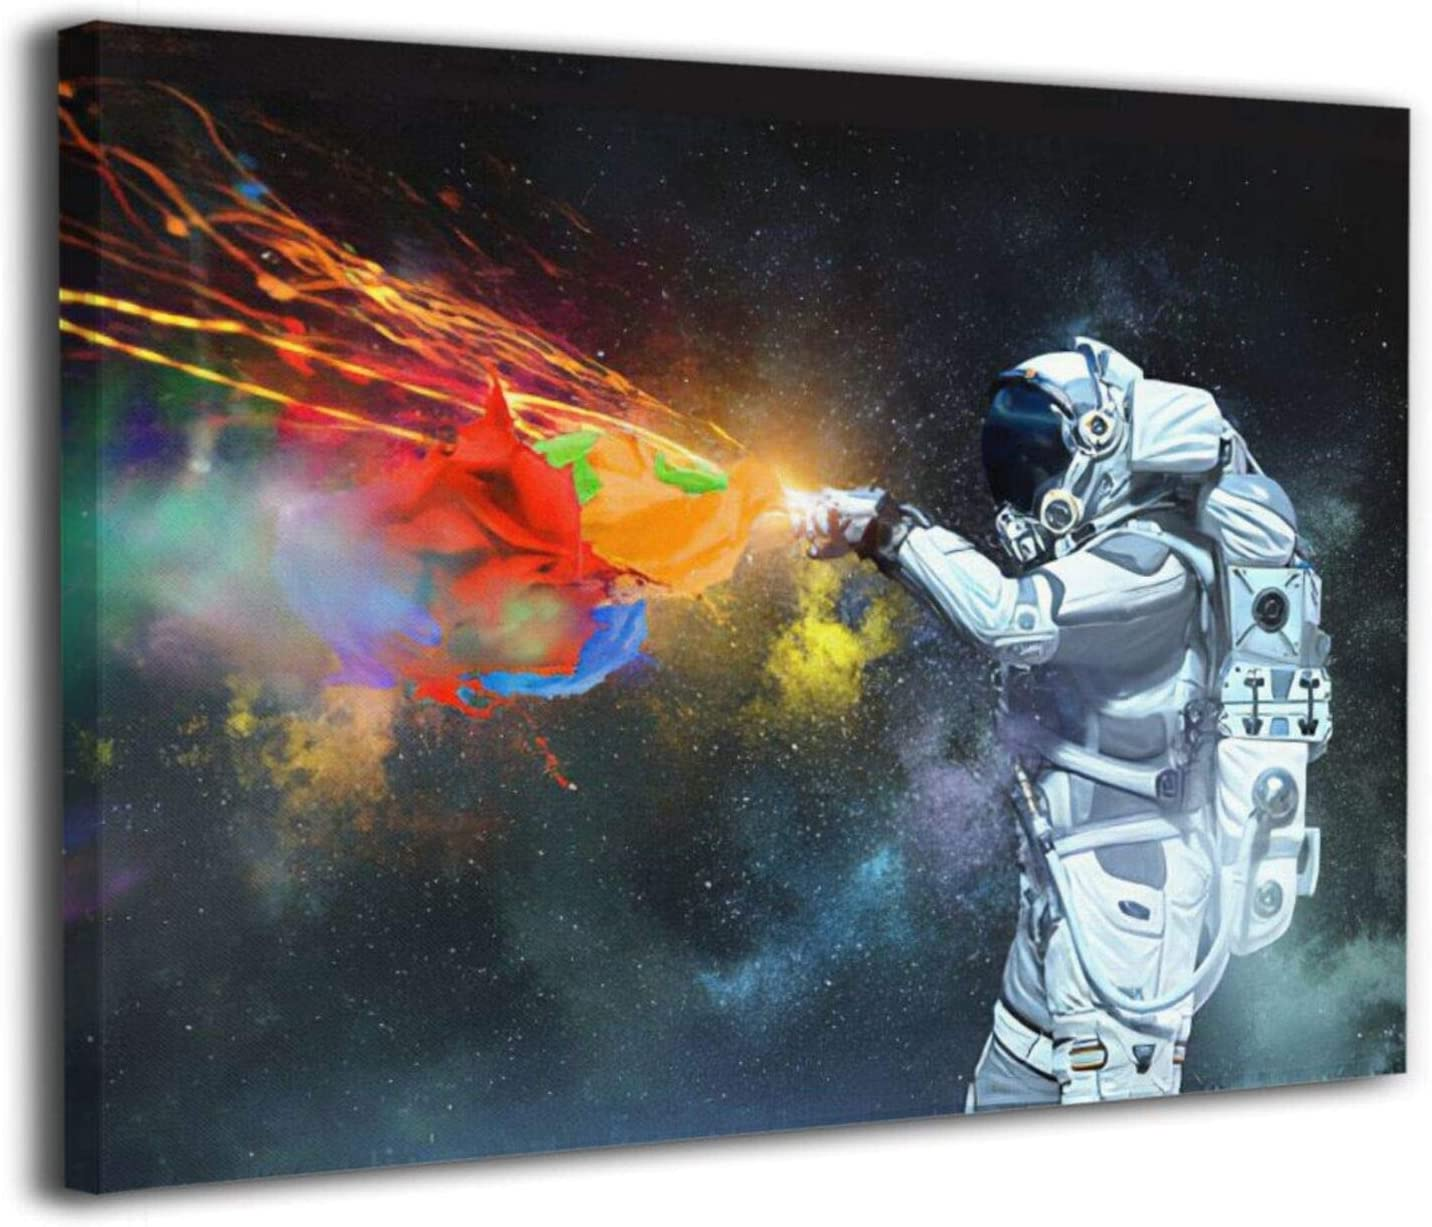 KING DARE Astronaut Space Adventure Planet Artwork Canvas Prints Framed Picture for Office Living Room Bathroom Poster Painting Home Decorations 12x16 Inch